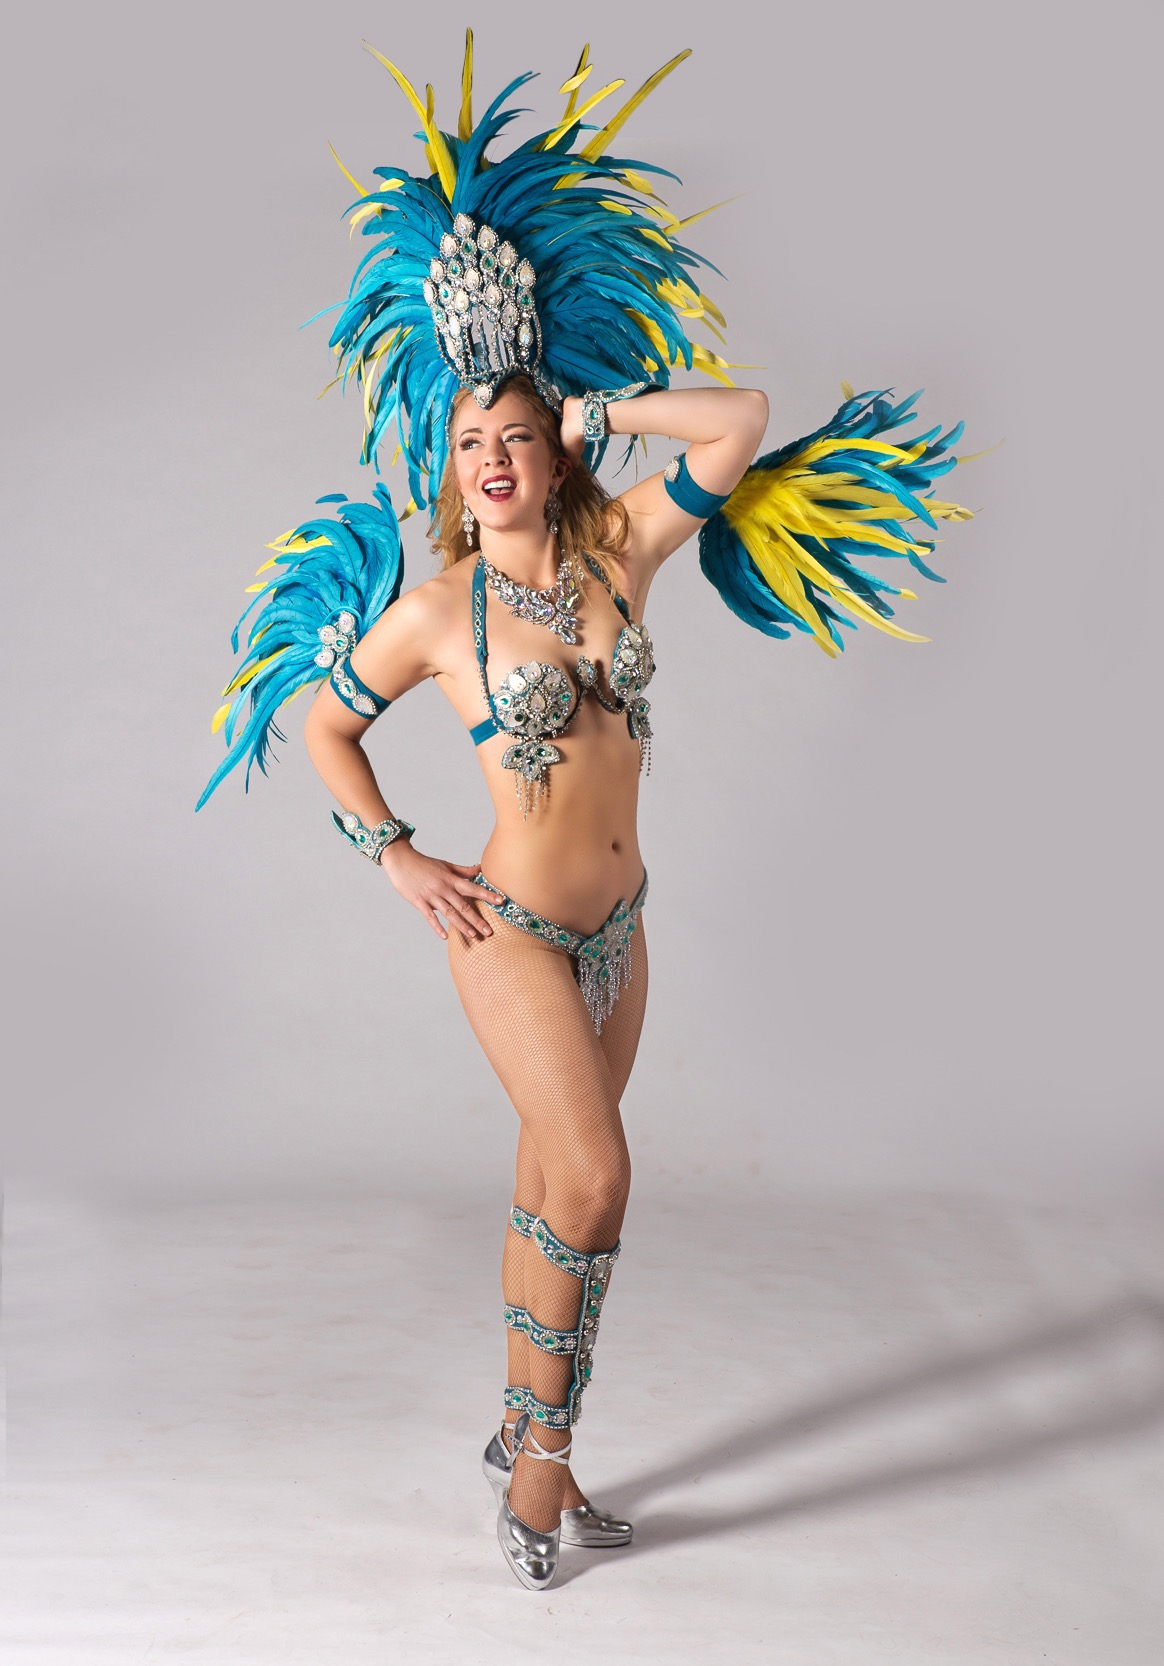 Vancouver Samba Dancer poses in Blue and Yellow samba costume by Miss Glamourosa